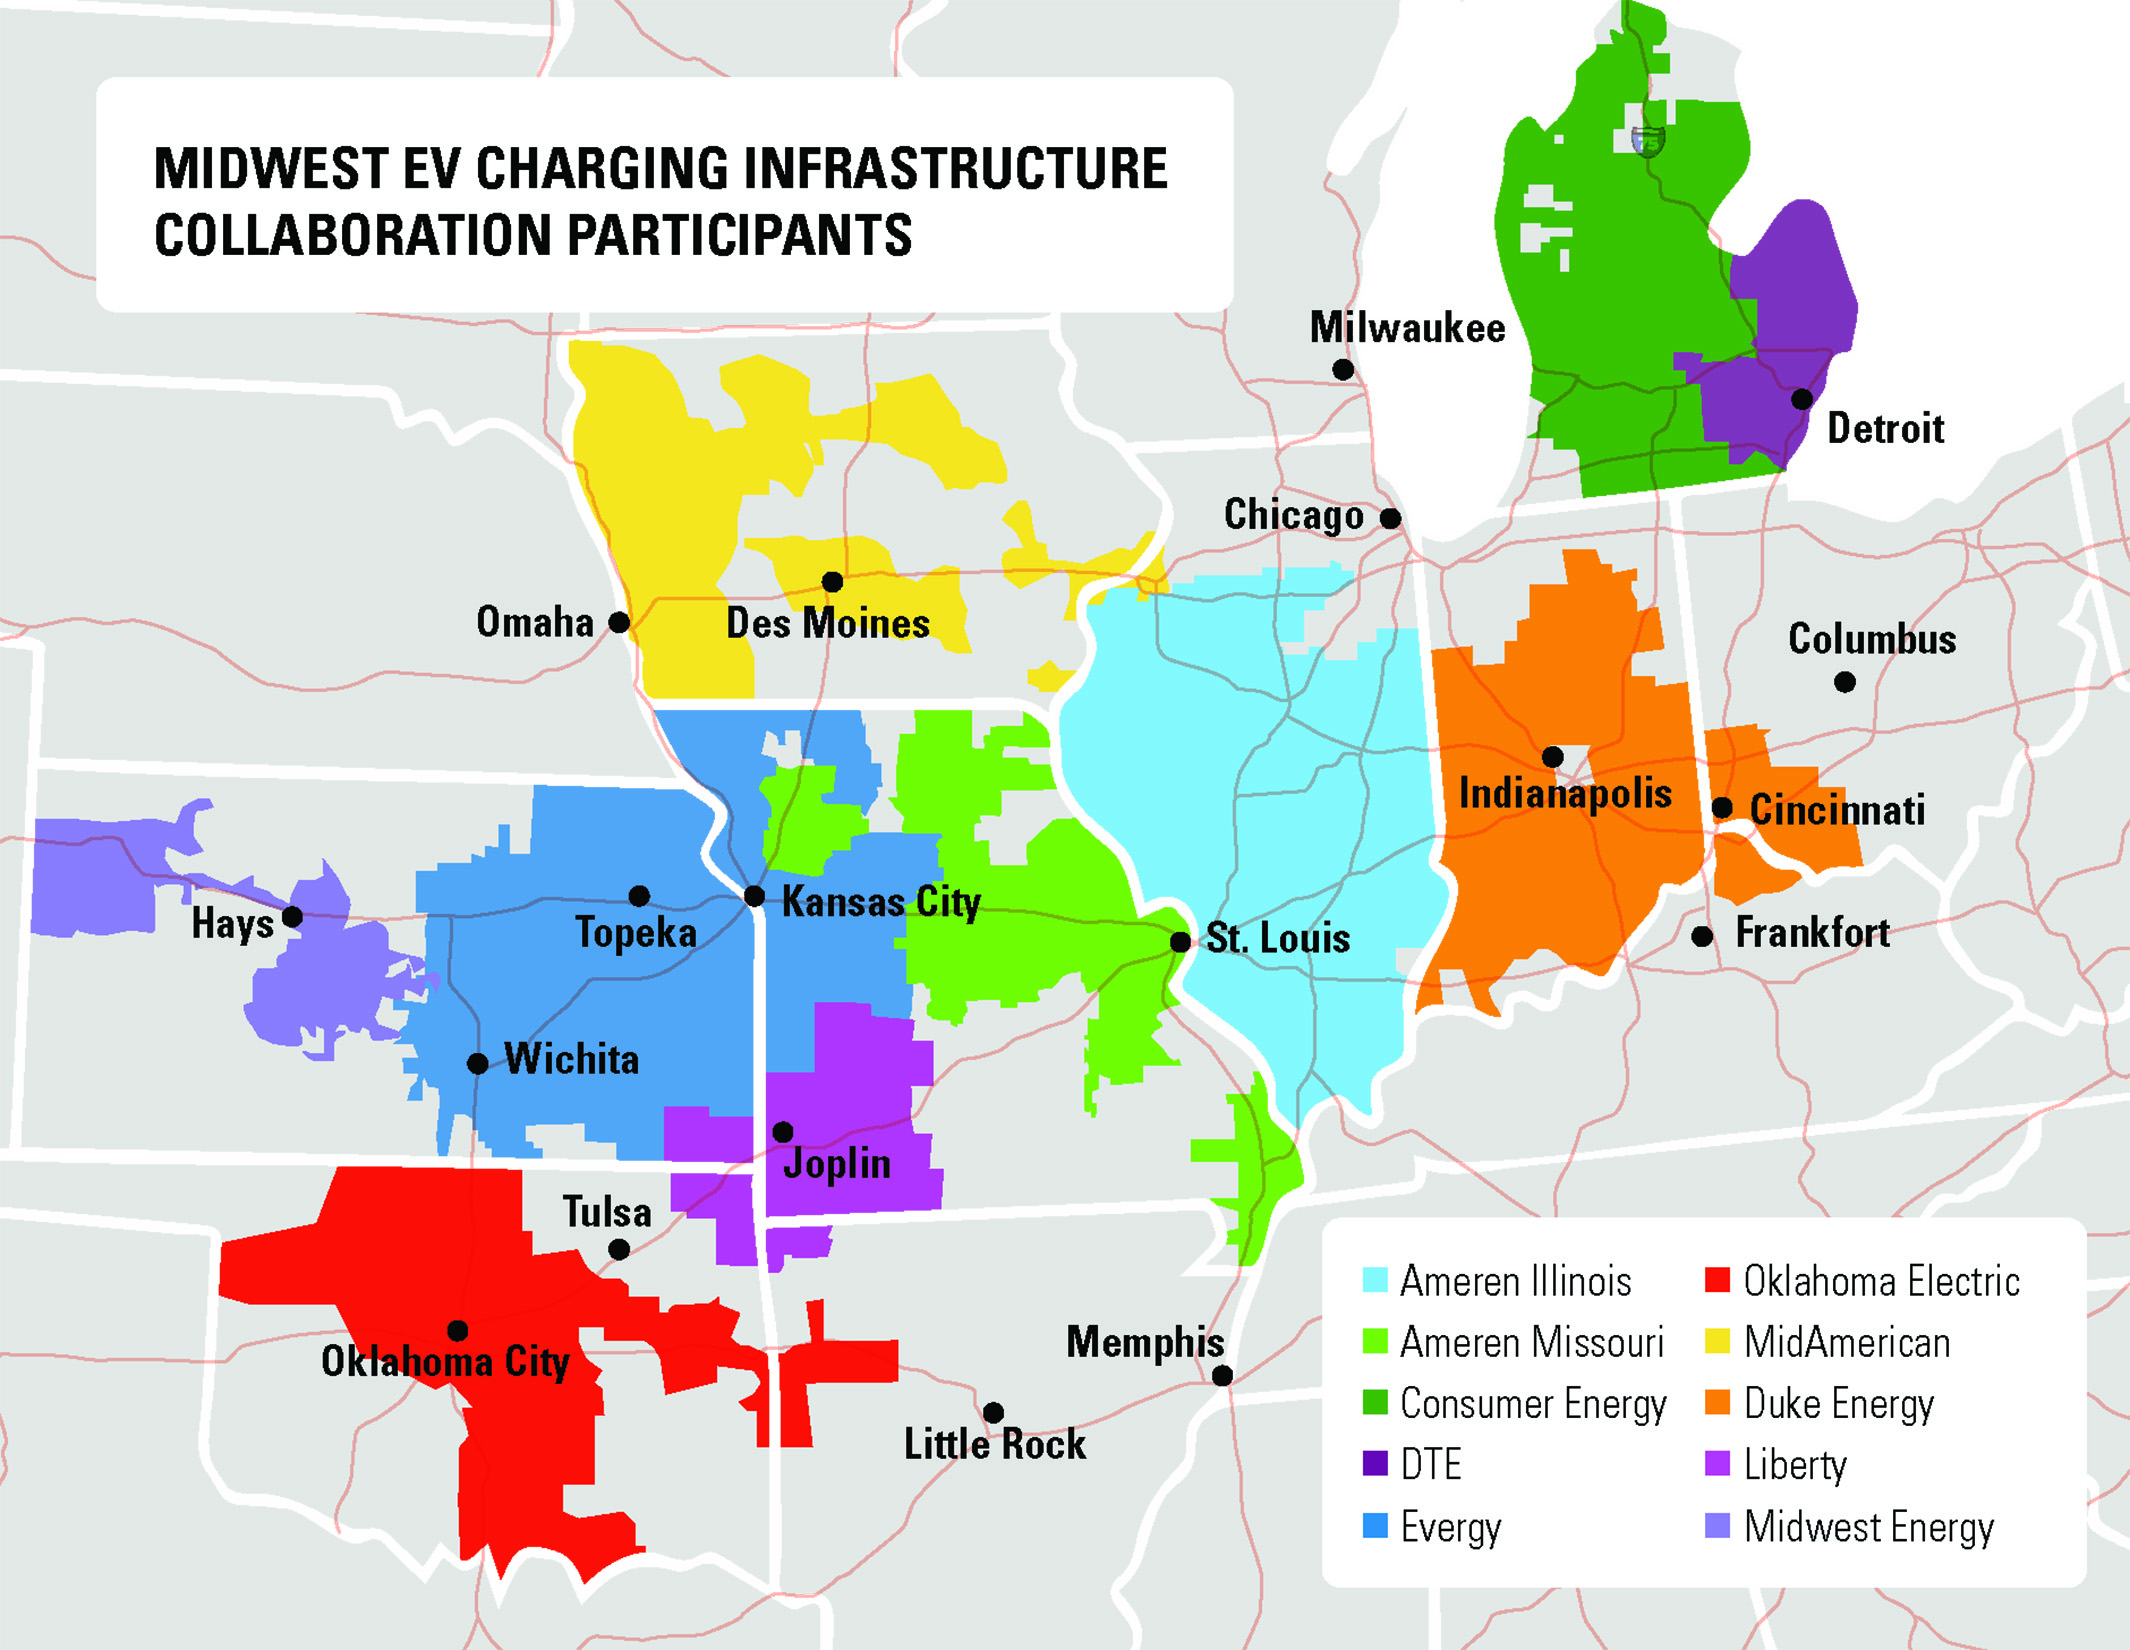 A map of the Midwestern U.S., showing 10 utility companies from Michigan to Kansas who have signed a memorandum of cooperation regarding electric vehicle chargers.